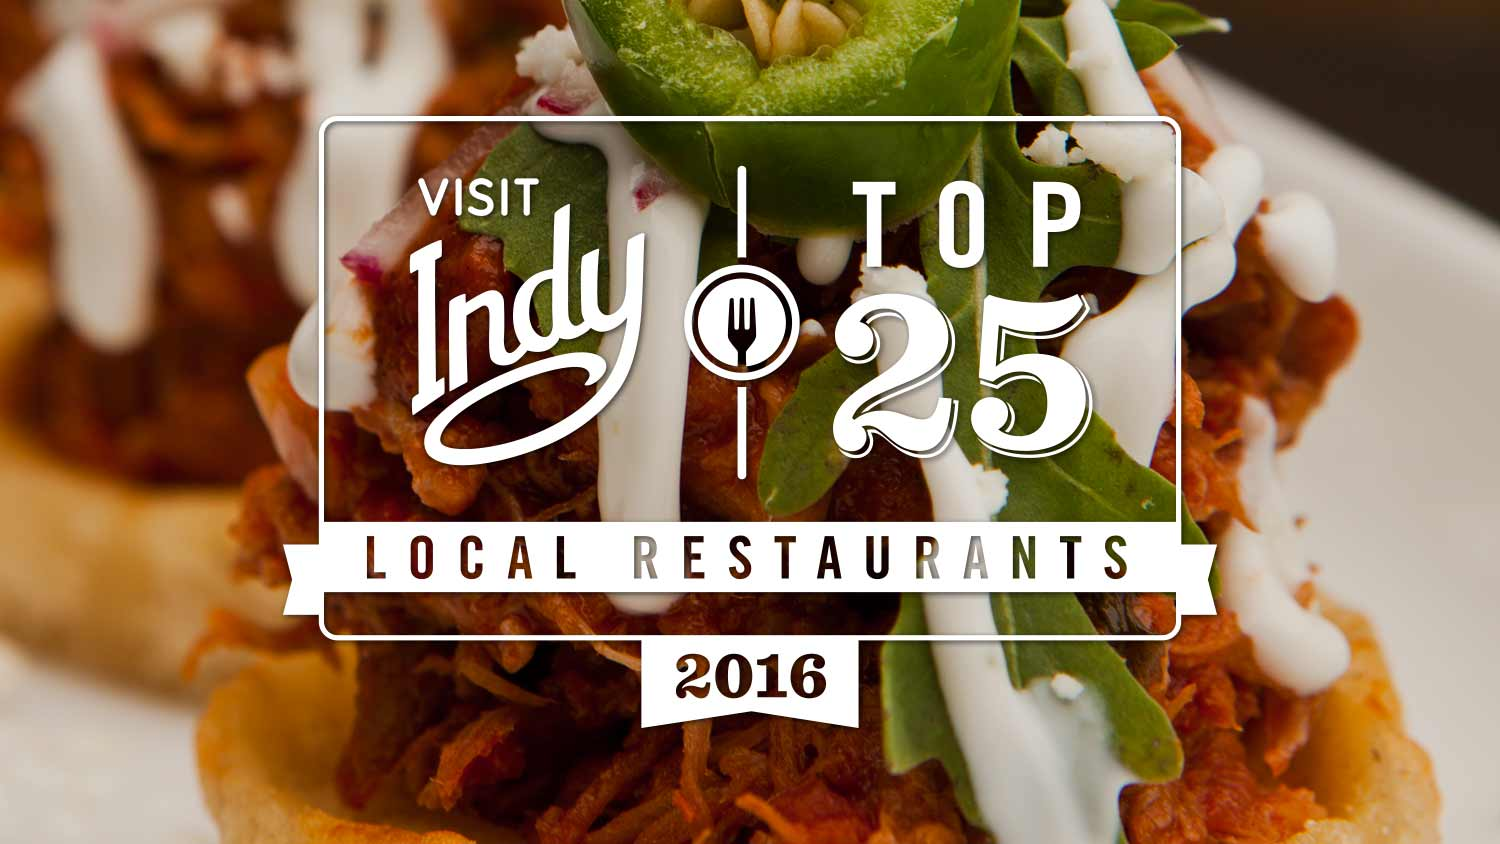 Top 25 local restaurants 2016